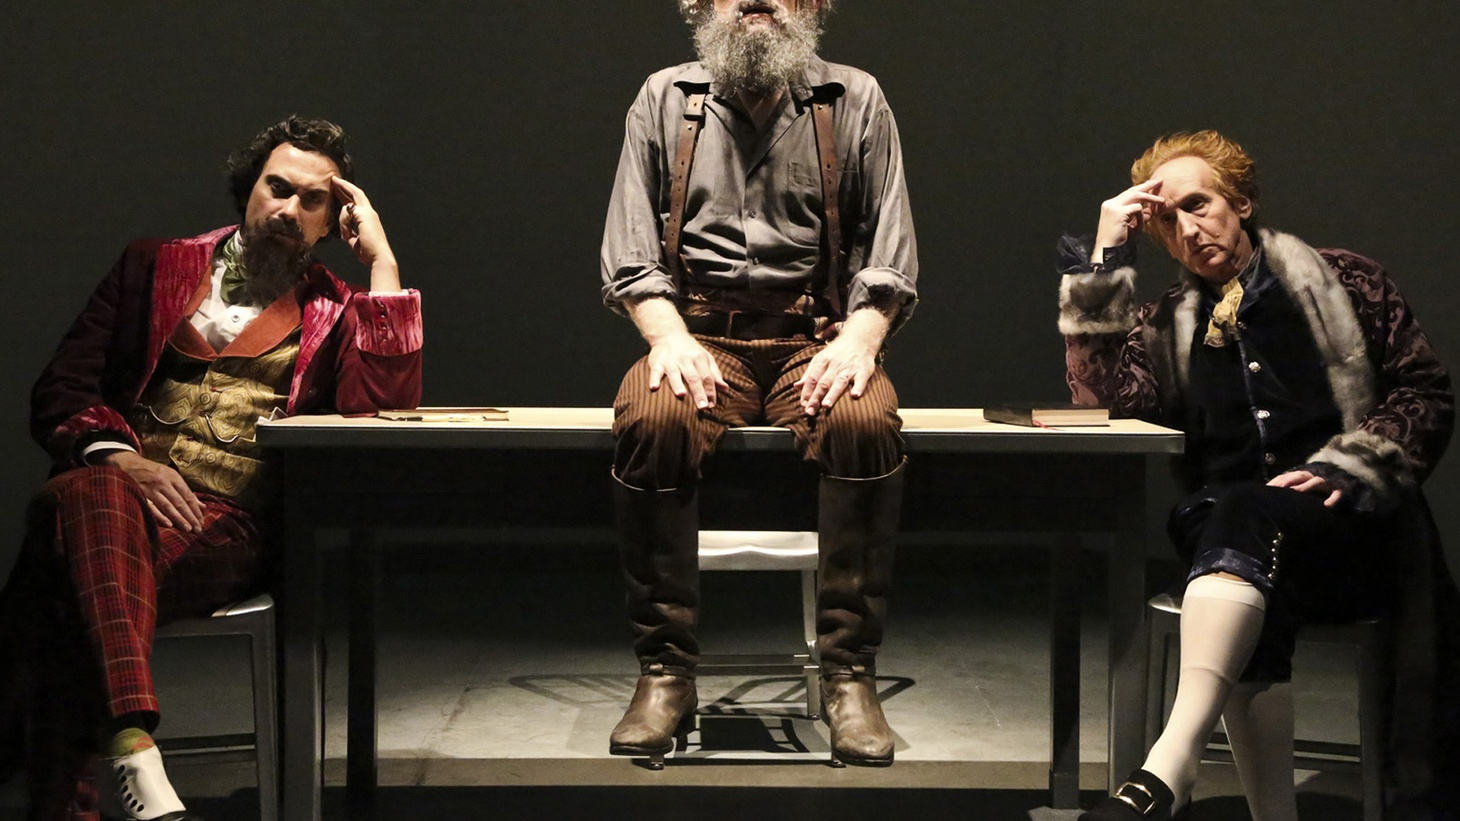 """Writing is hard. Now, I wish I could say I learned that from watching Scott Carter's play """"The Gospel According to Thomas Jefferson, Charles Dickens and Count Leo Tolstoy: Discord"""" at the Geffen. Truth is I learned writing is hard by enduring it."""